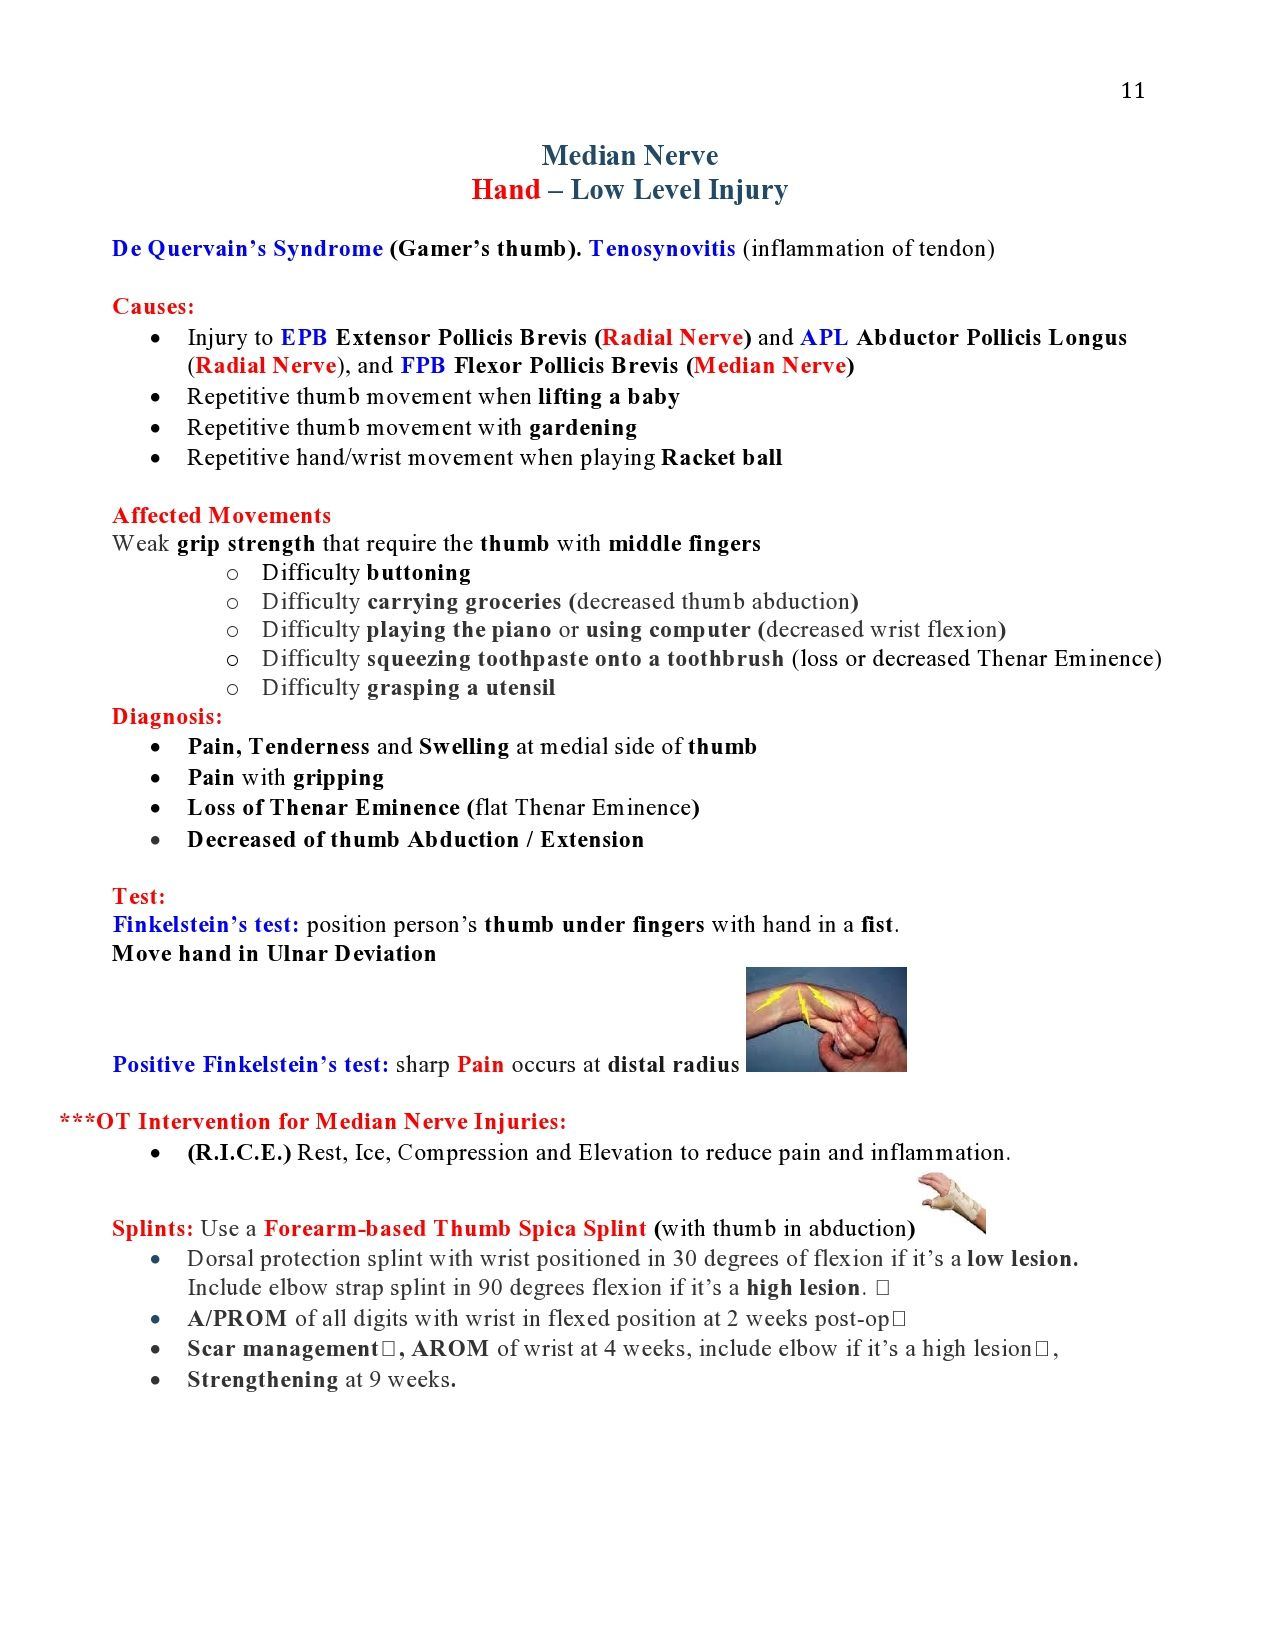 Peripheral Nerve Injuries Study Guide page 11 https://www.inkling.com/read/skirven-rehabilitation-the-hand-upper-extremity-6th/chapter-45/presentation-of-specific-nerve